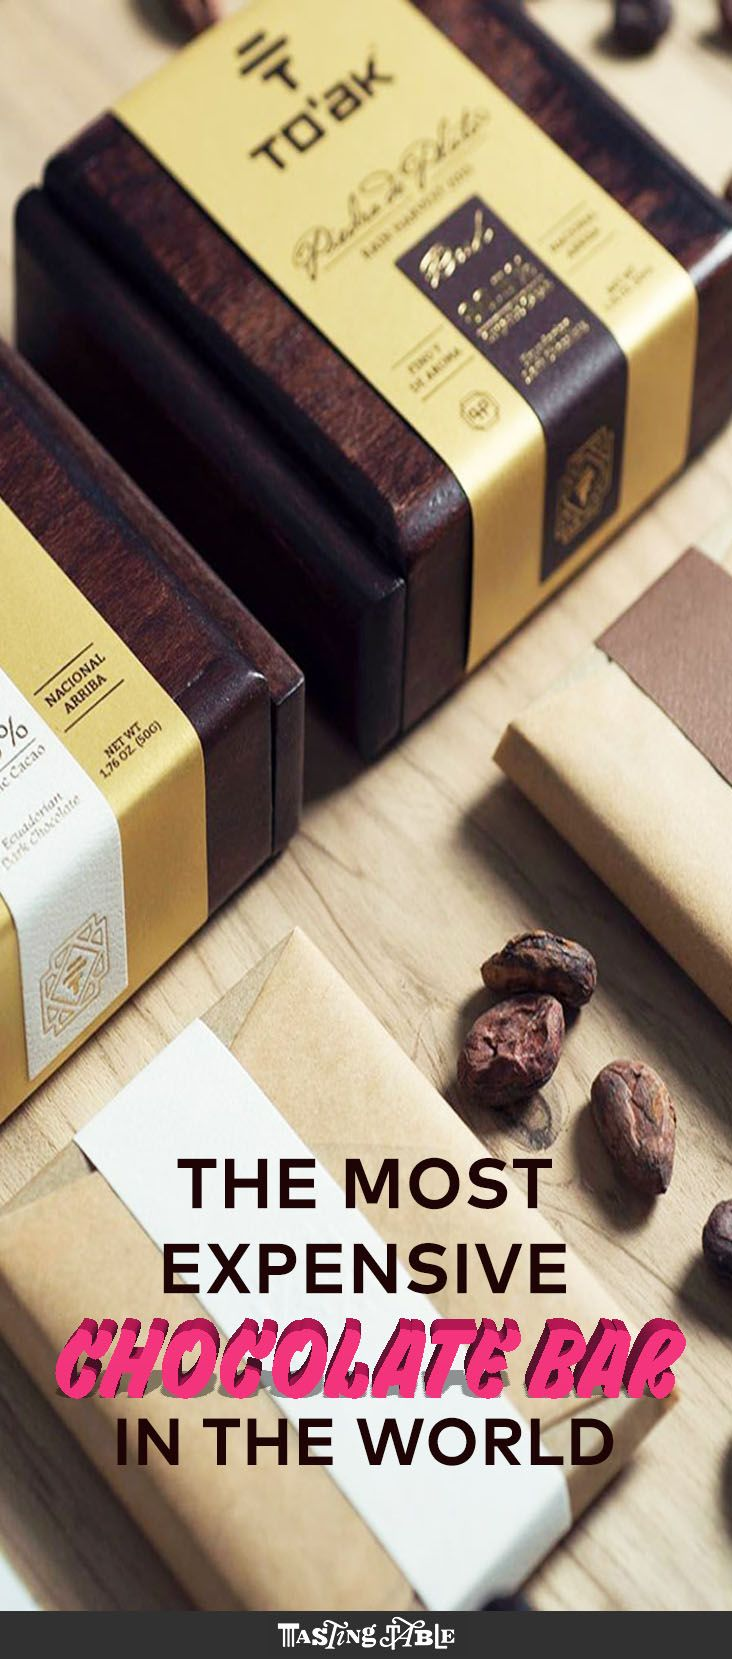 59 best Chocolate images on Pinterest | Chocolate, Chocolate bars ...